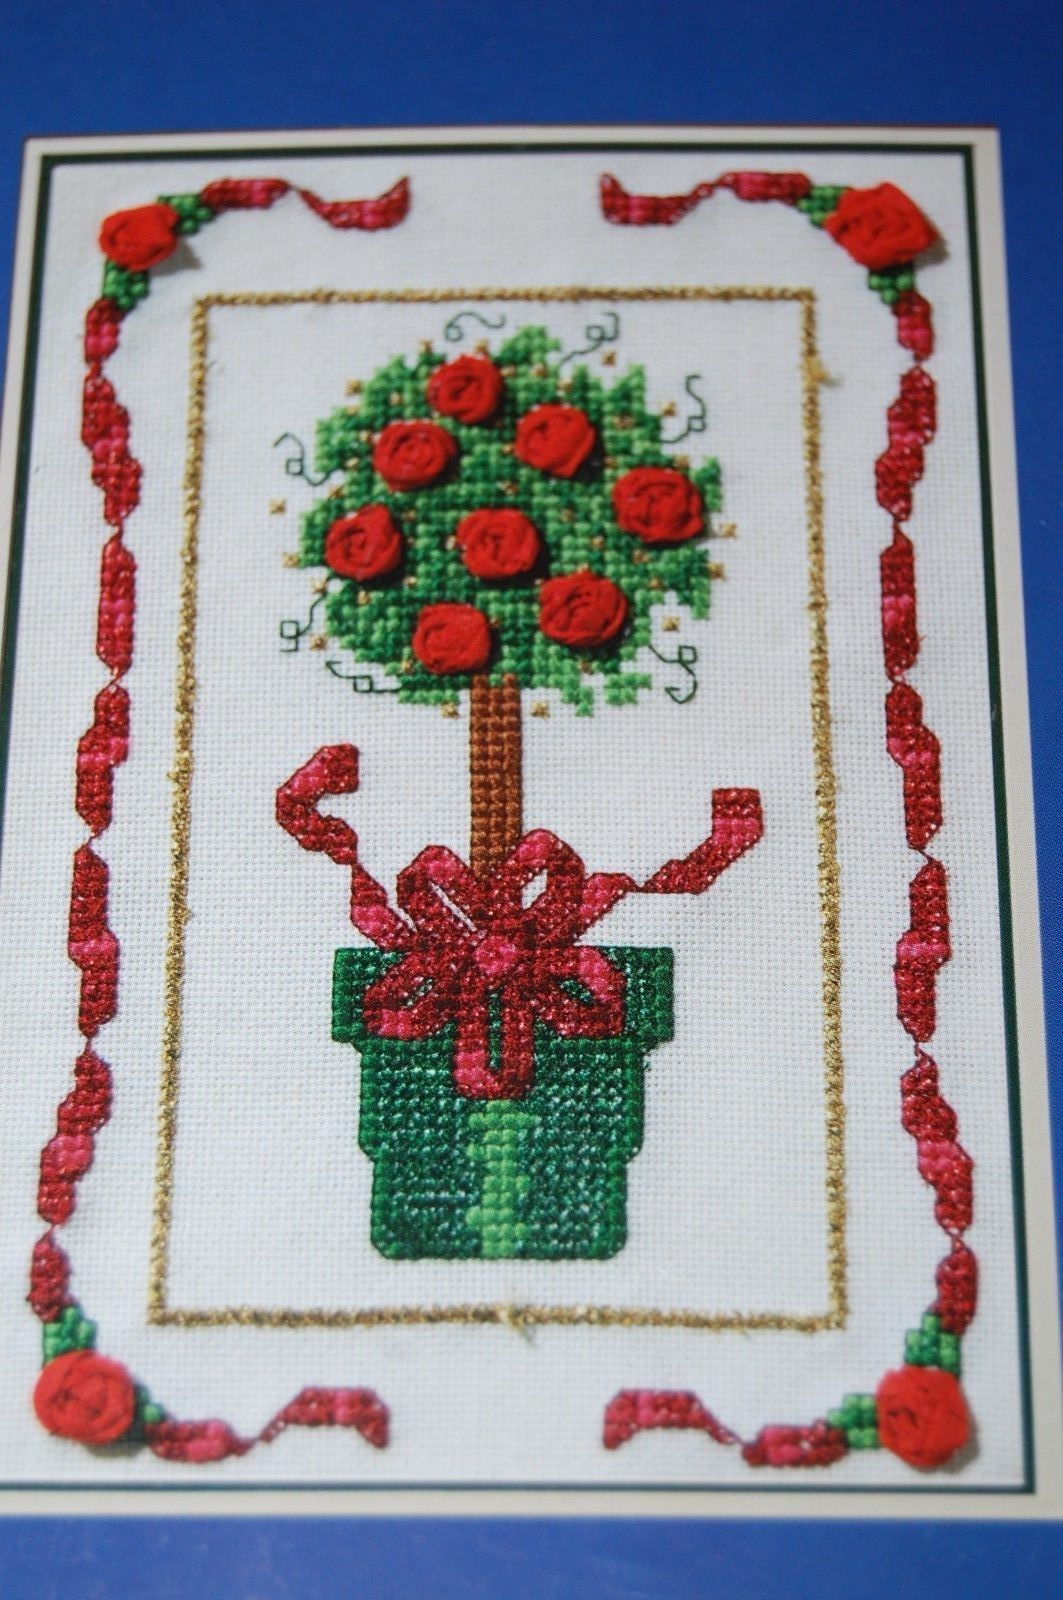 The Spirit Of Christmas Topiary Tree Counted Cross Stitch Ribbon Kit